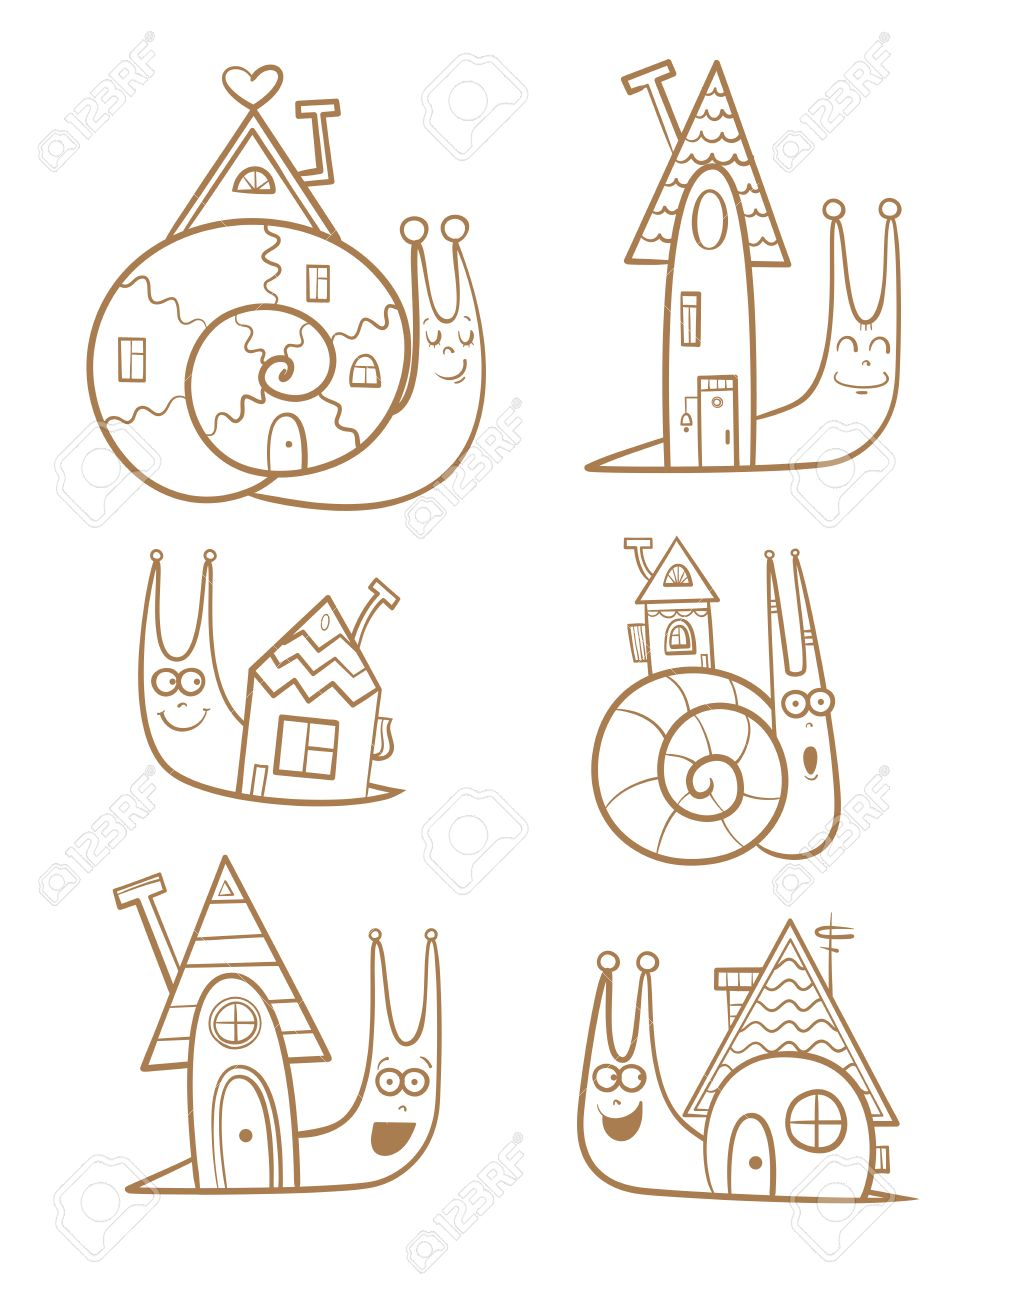 Cute Cartoon Snails And Their Houses Set Sweet Home Childrens Illustration Transparent Background